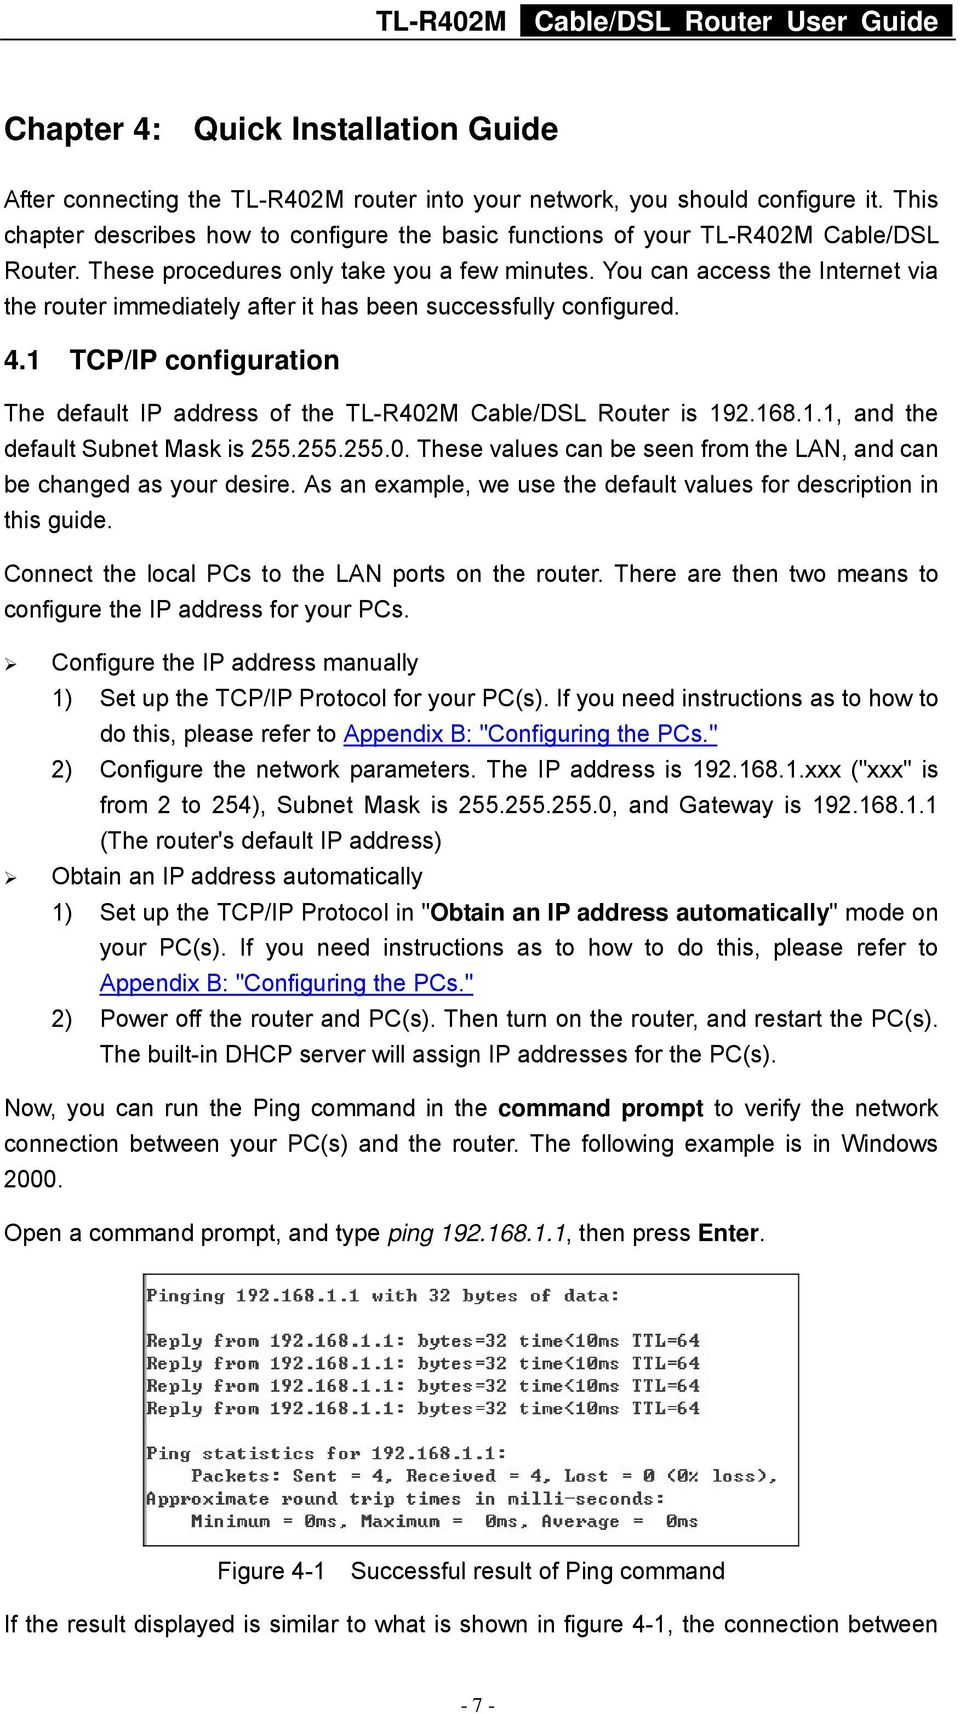 You can access the Internet via the router immediately after it has been successfully configured. 4.1 TCP/IP configuration The default IP address of the TL-R402M Cable/DSL Router is 192.168.1.1, and the default Subnet Mask is 255.